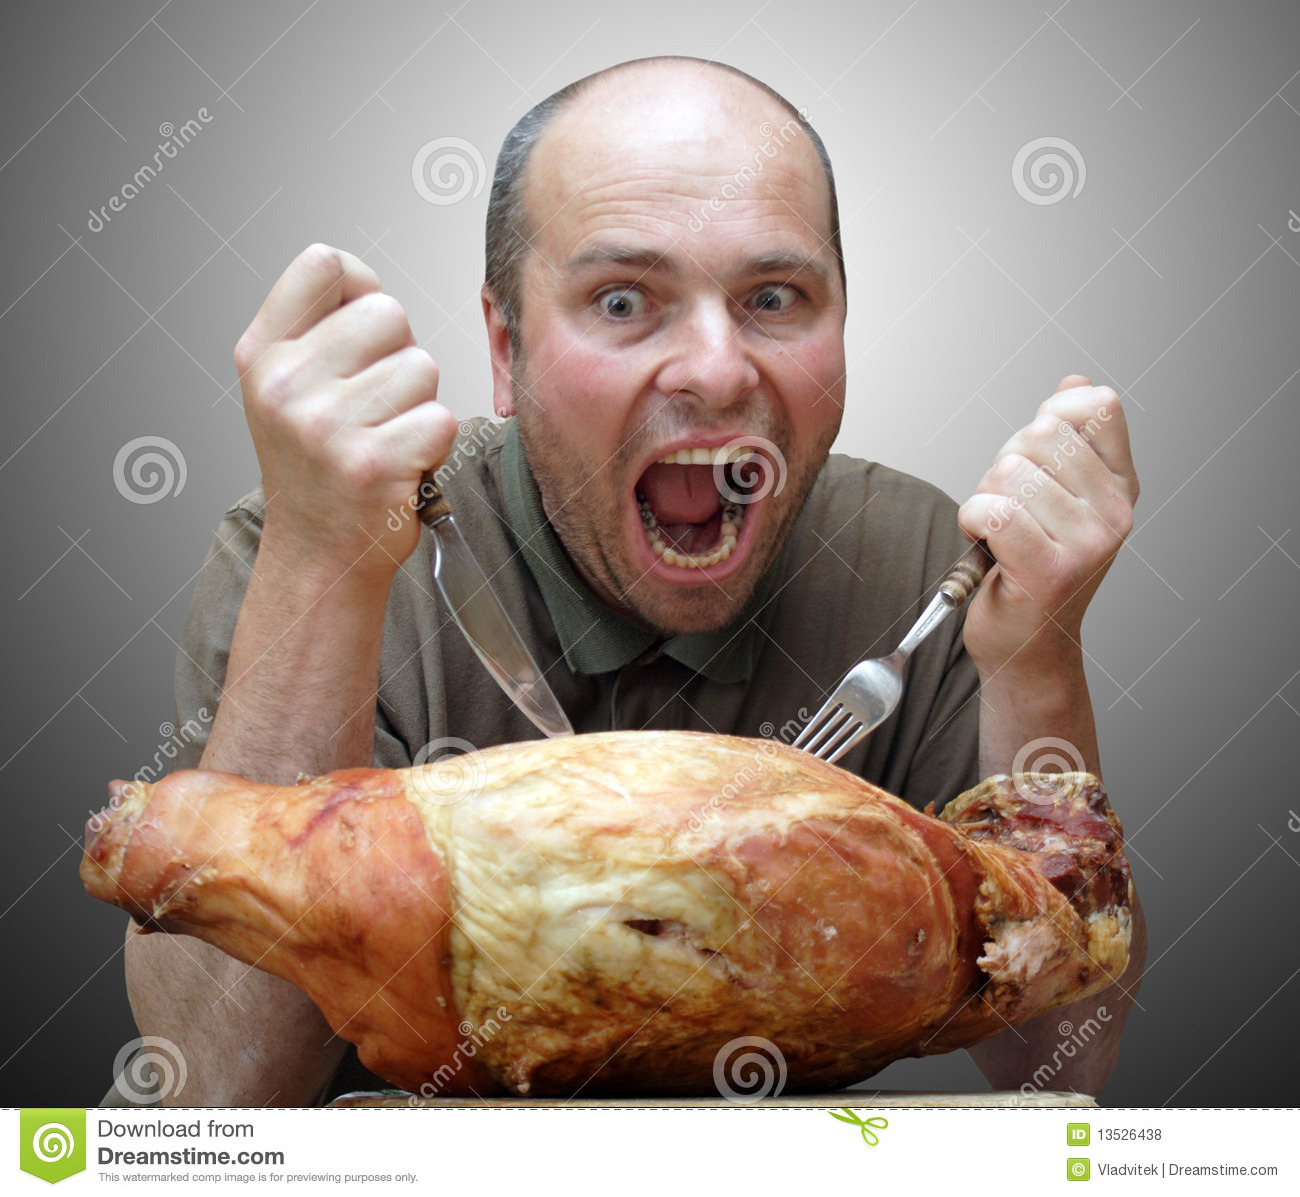 Dec 08, · Trying to determine the right amount of food to purchase for agathering can be tricky. For a ten pound ham which still has thebone in it, you can feed between 8 - 10 people.